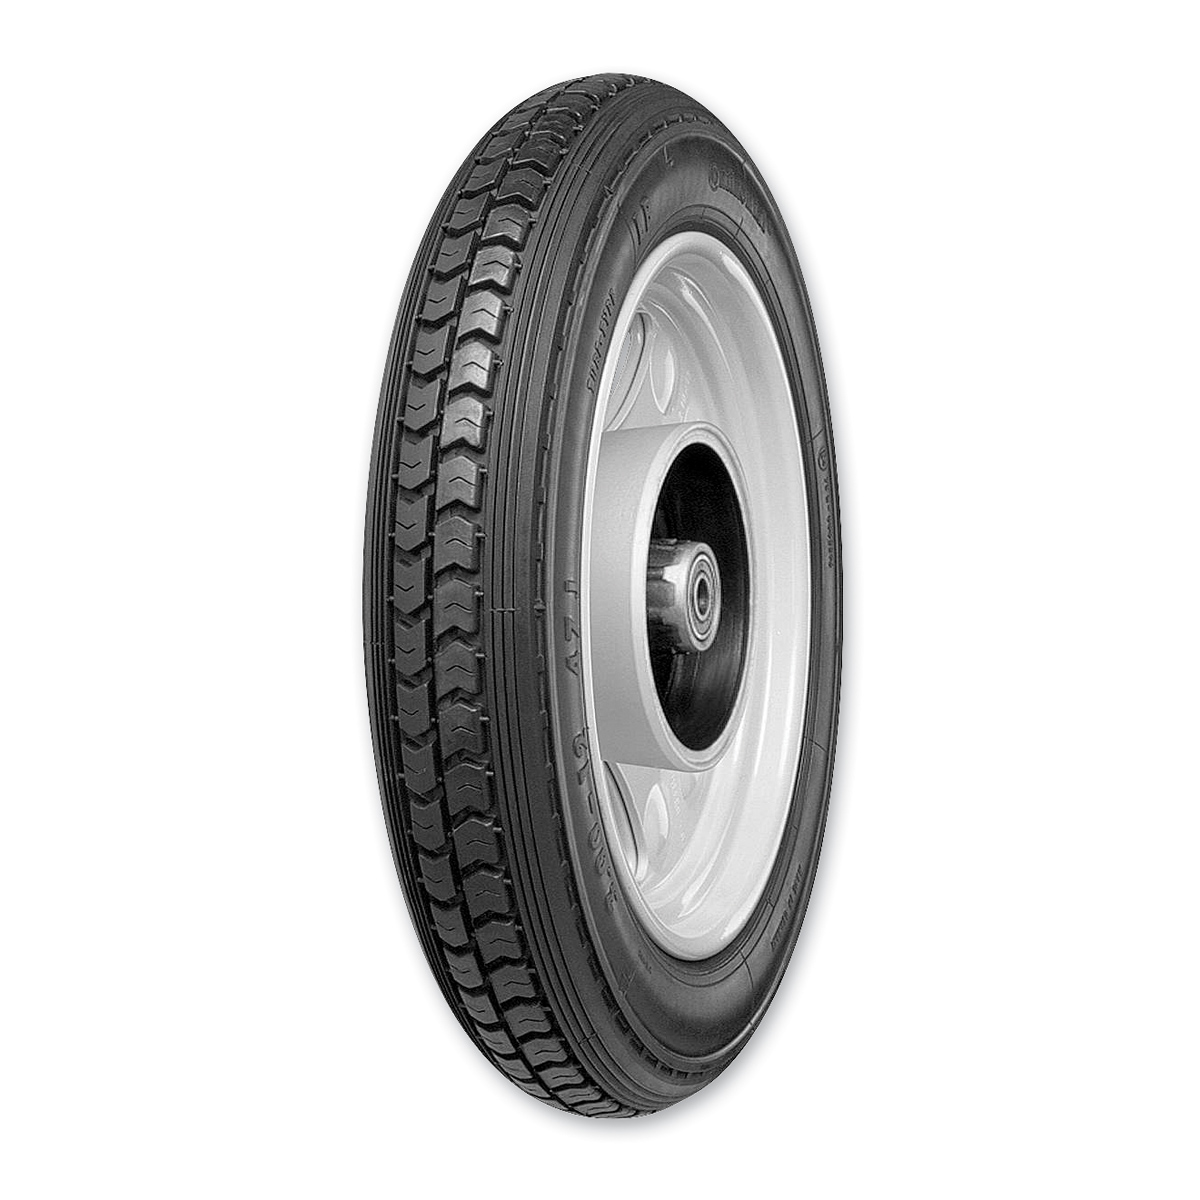 Continental K62 3.50-10 Front/Rear Tire